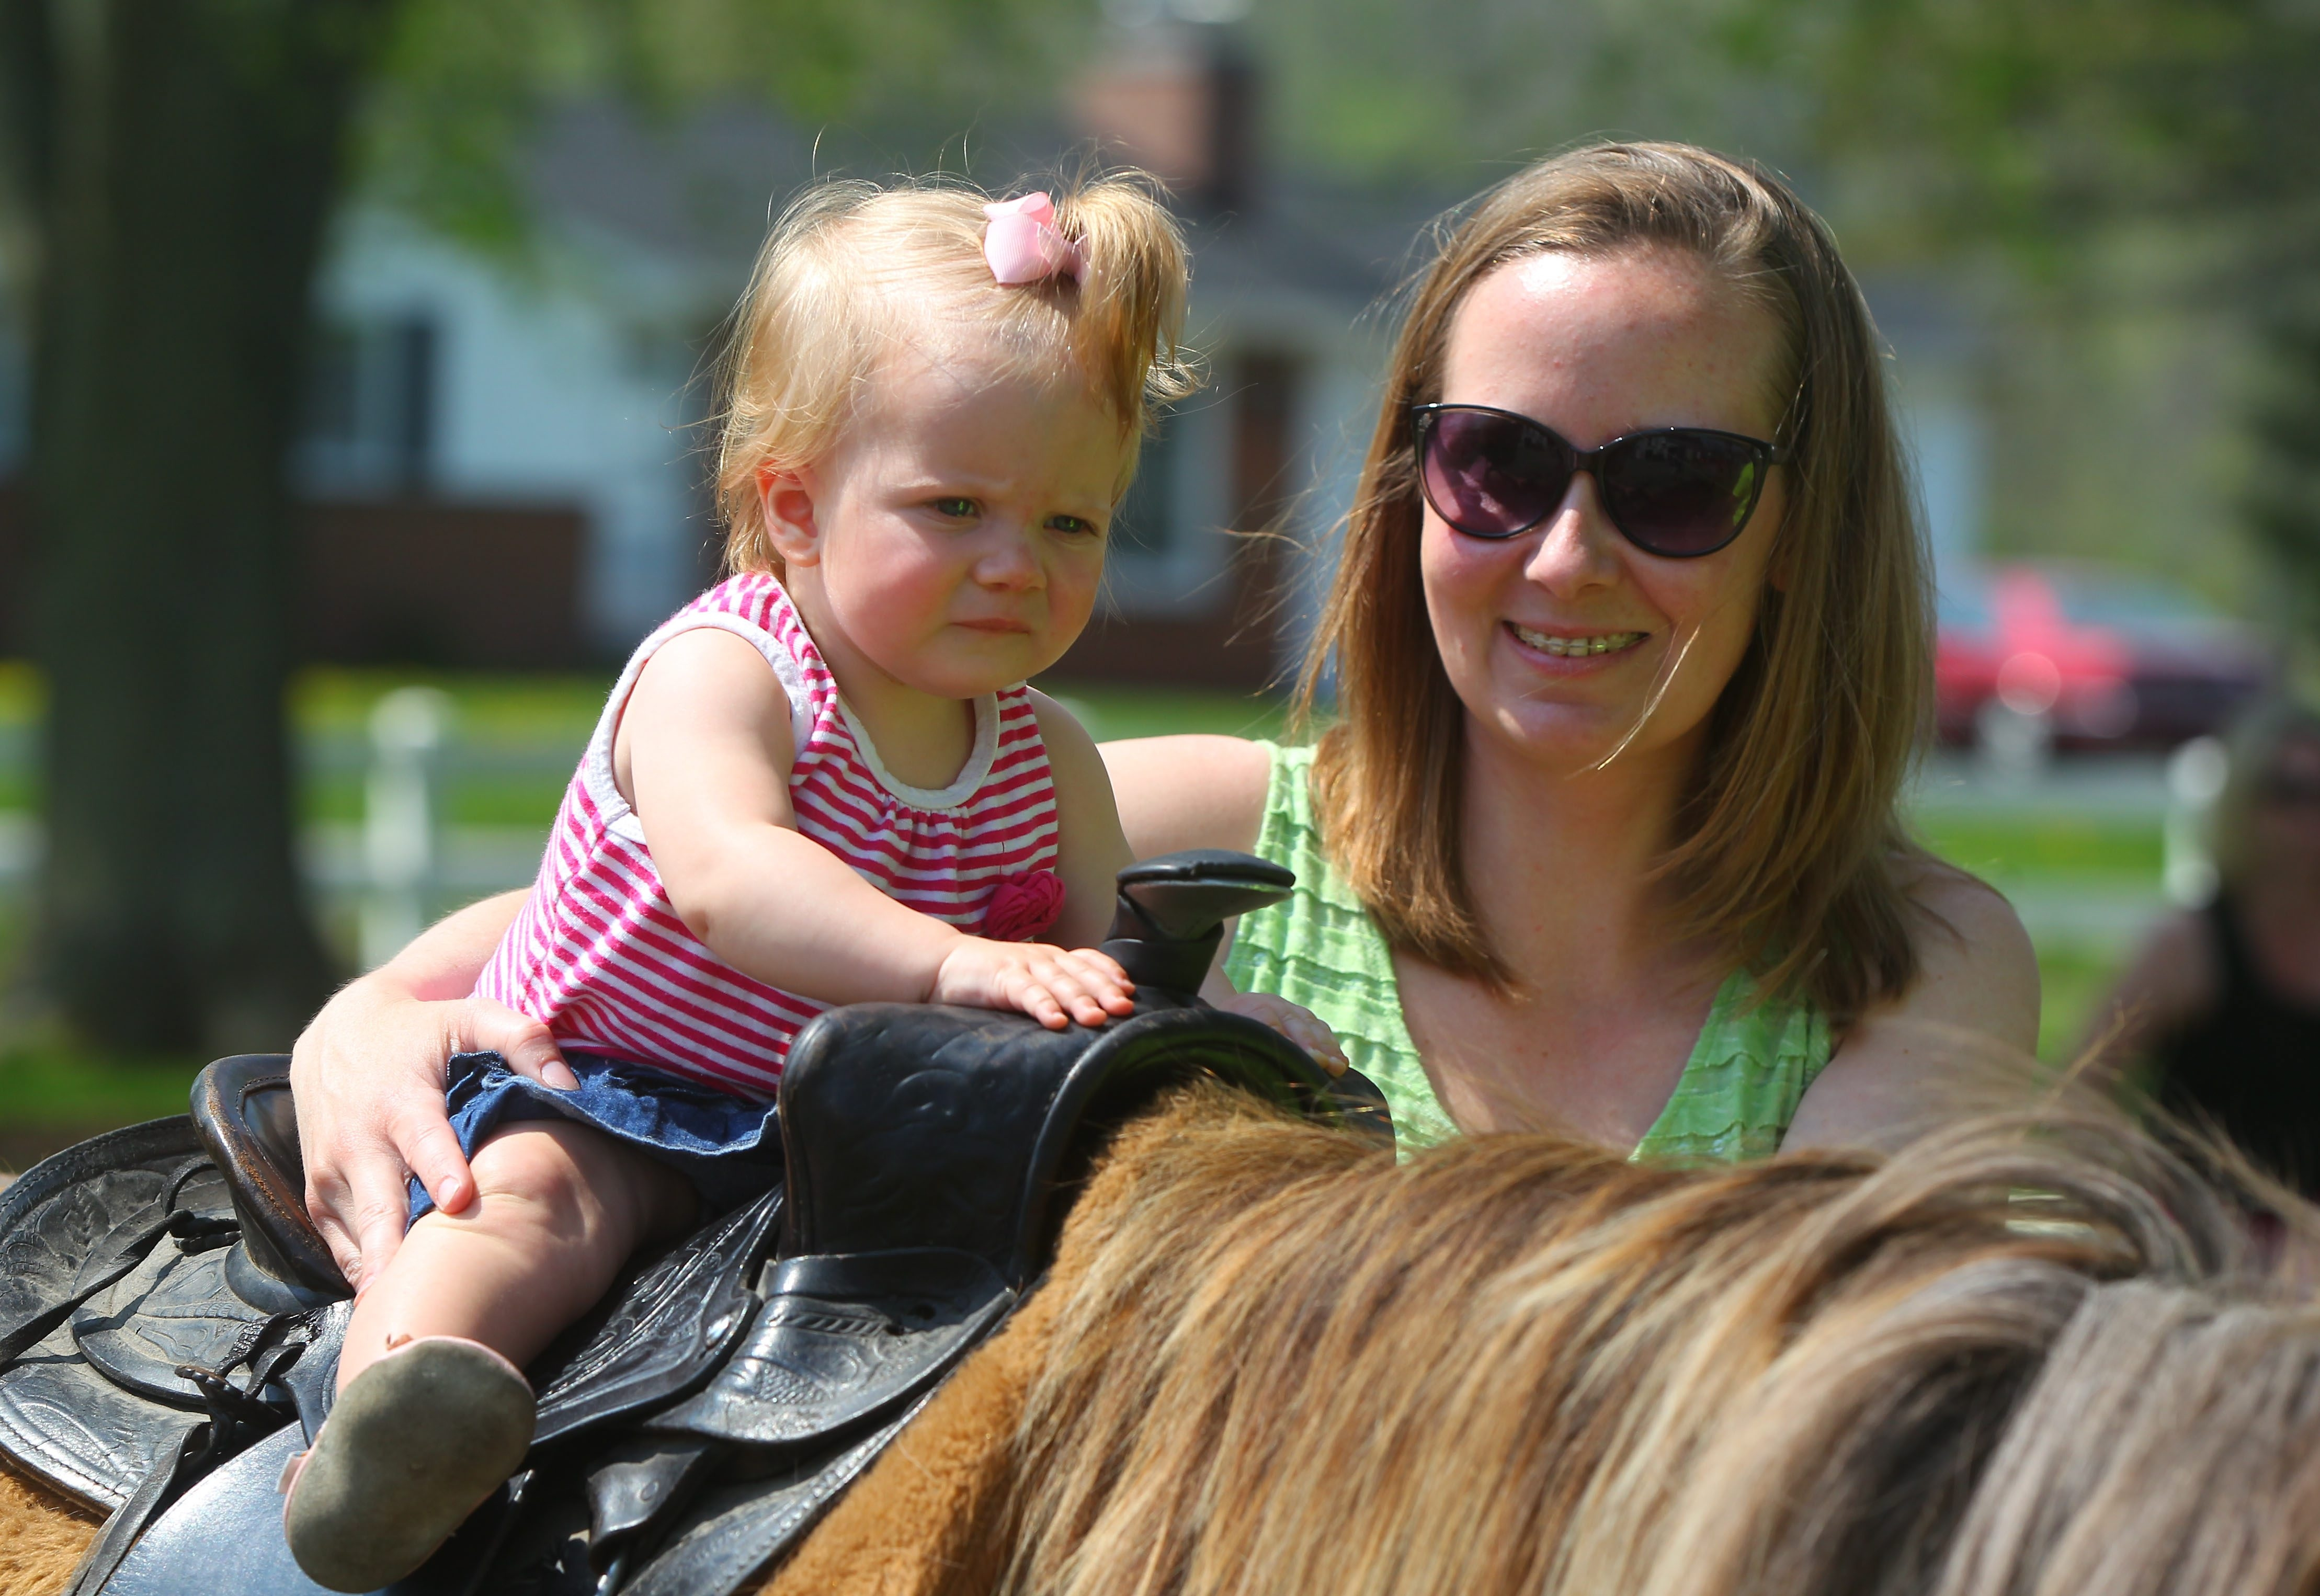 Ashley Bowersox holds her daughter Audra as she takes a pony ride during Mother's Day Down on the Farm at the Kelkenberg farm in Clarence on Sunday. See a photo gallery at buffalonews.com